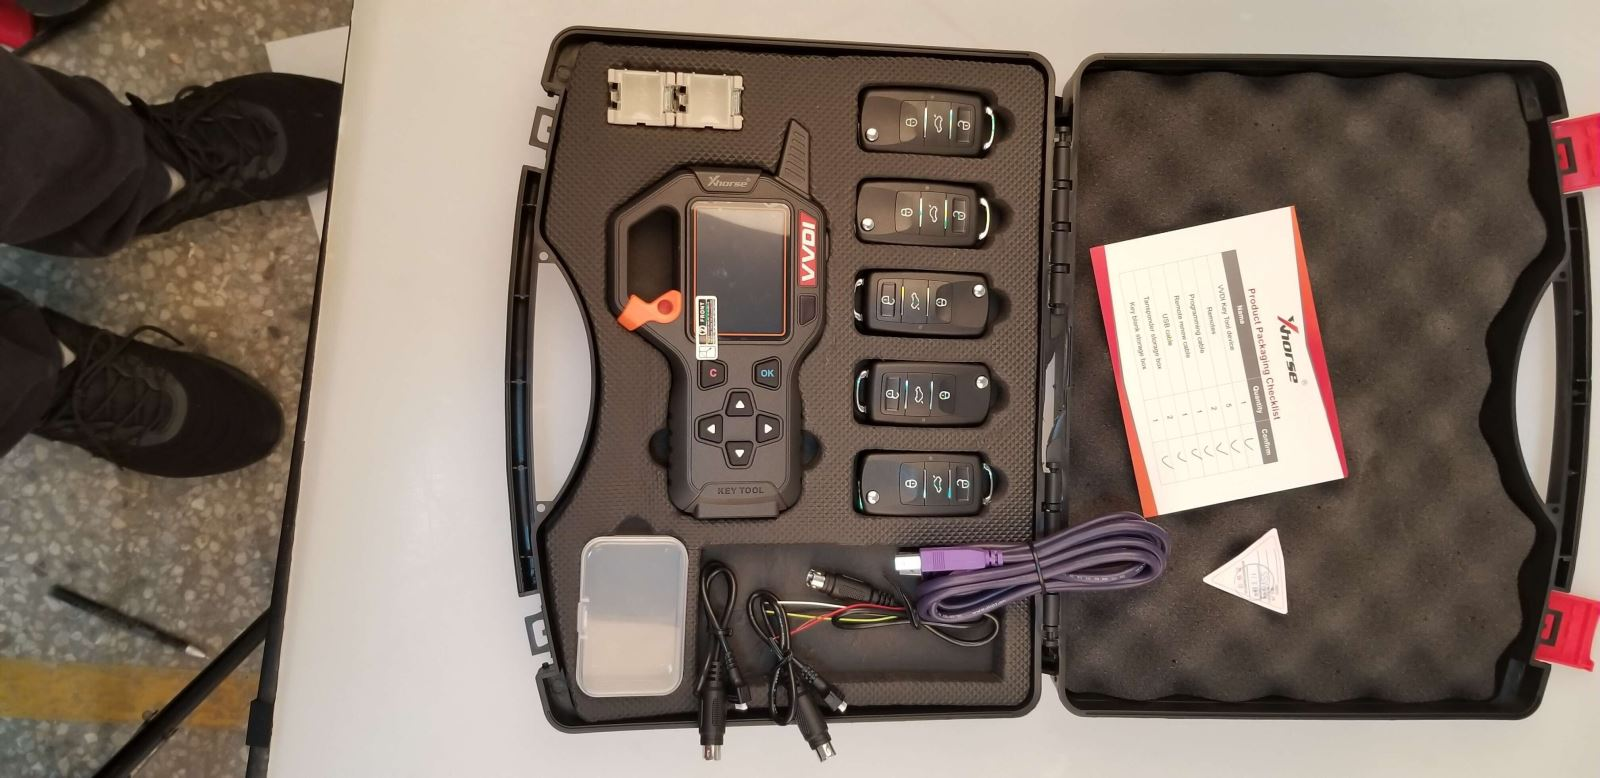 VVDI Key tool full package